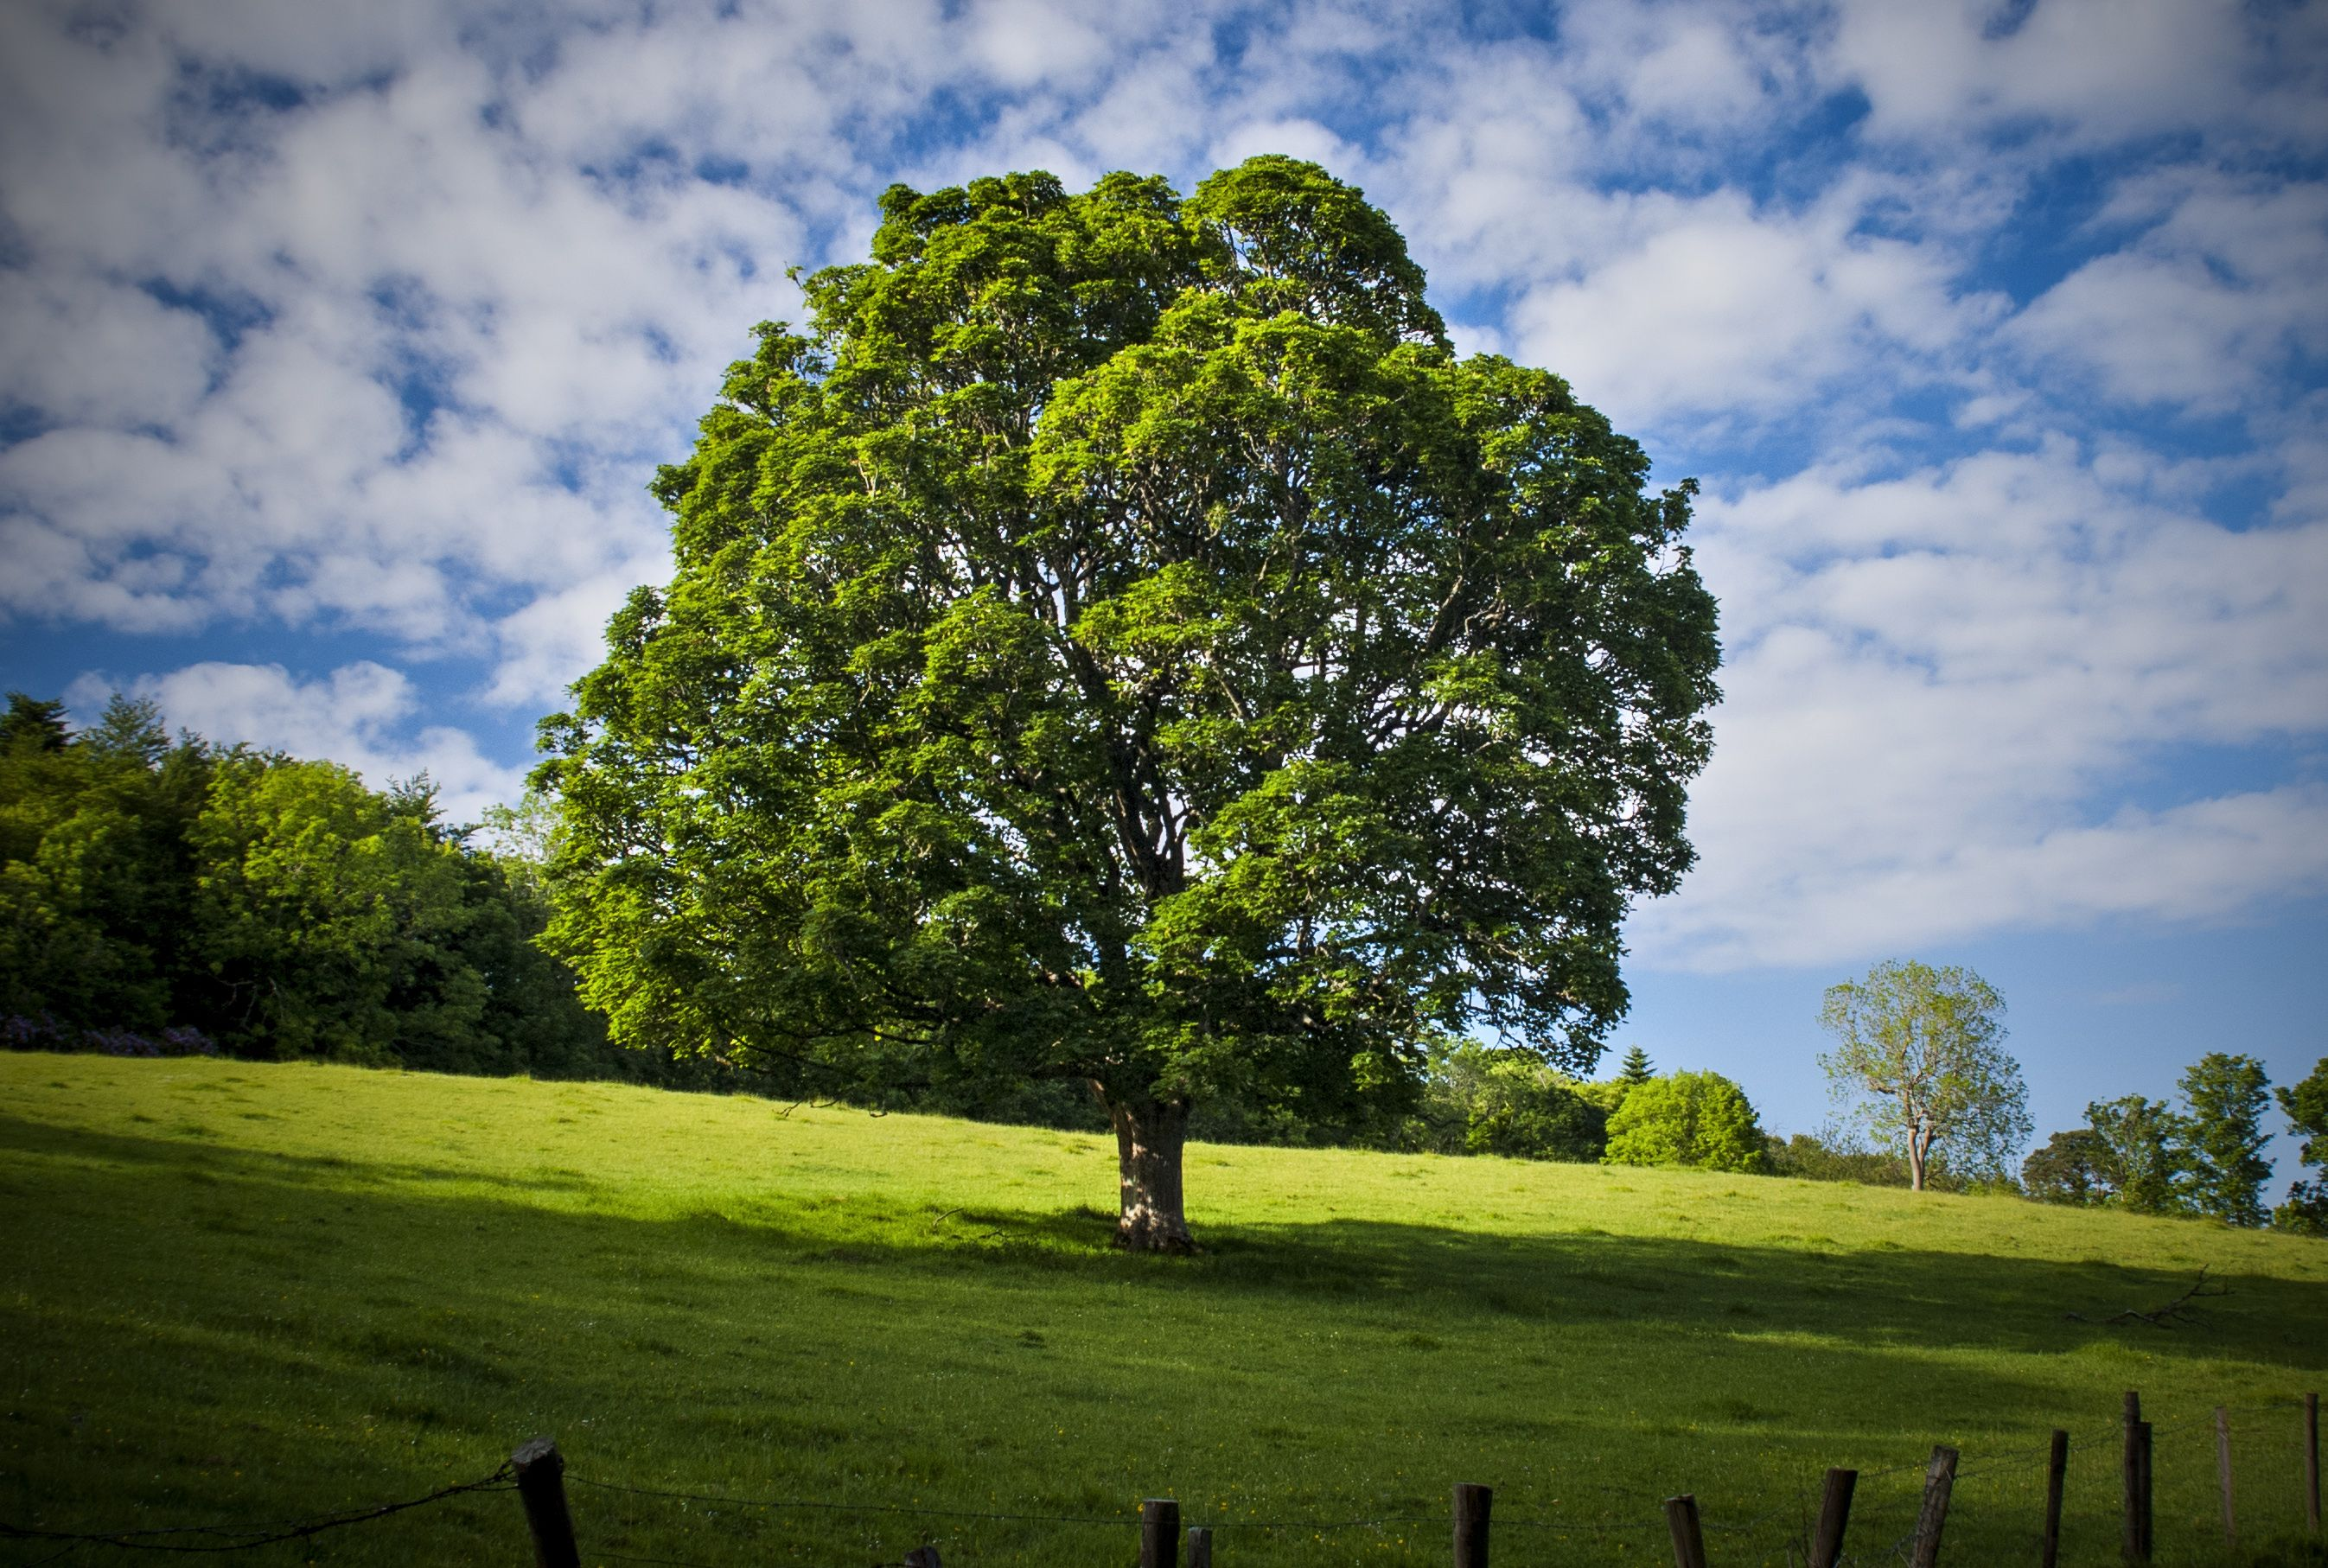 Pin by Amy Stoker on Trees and landscapes Tree wallpaper